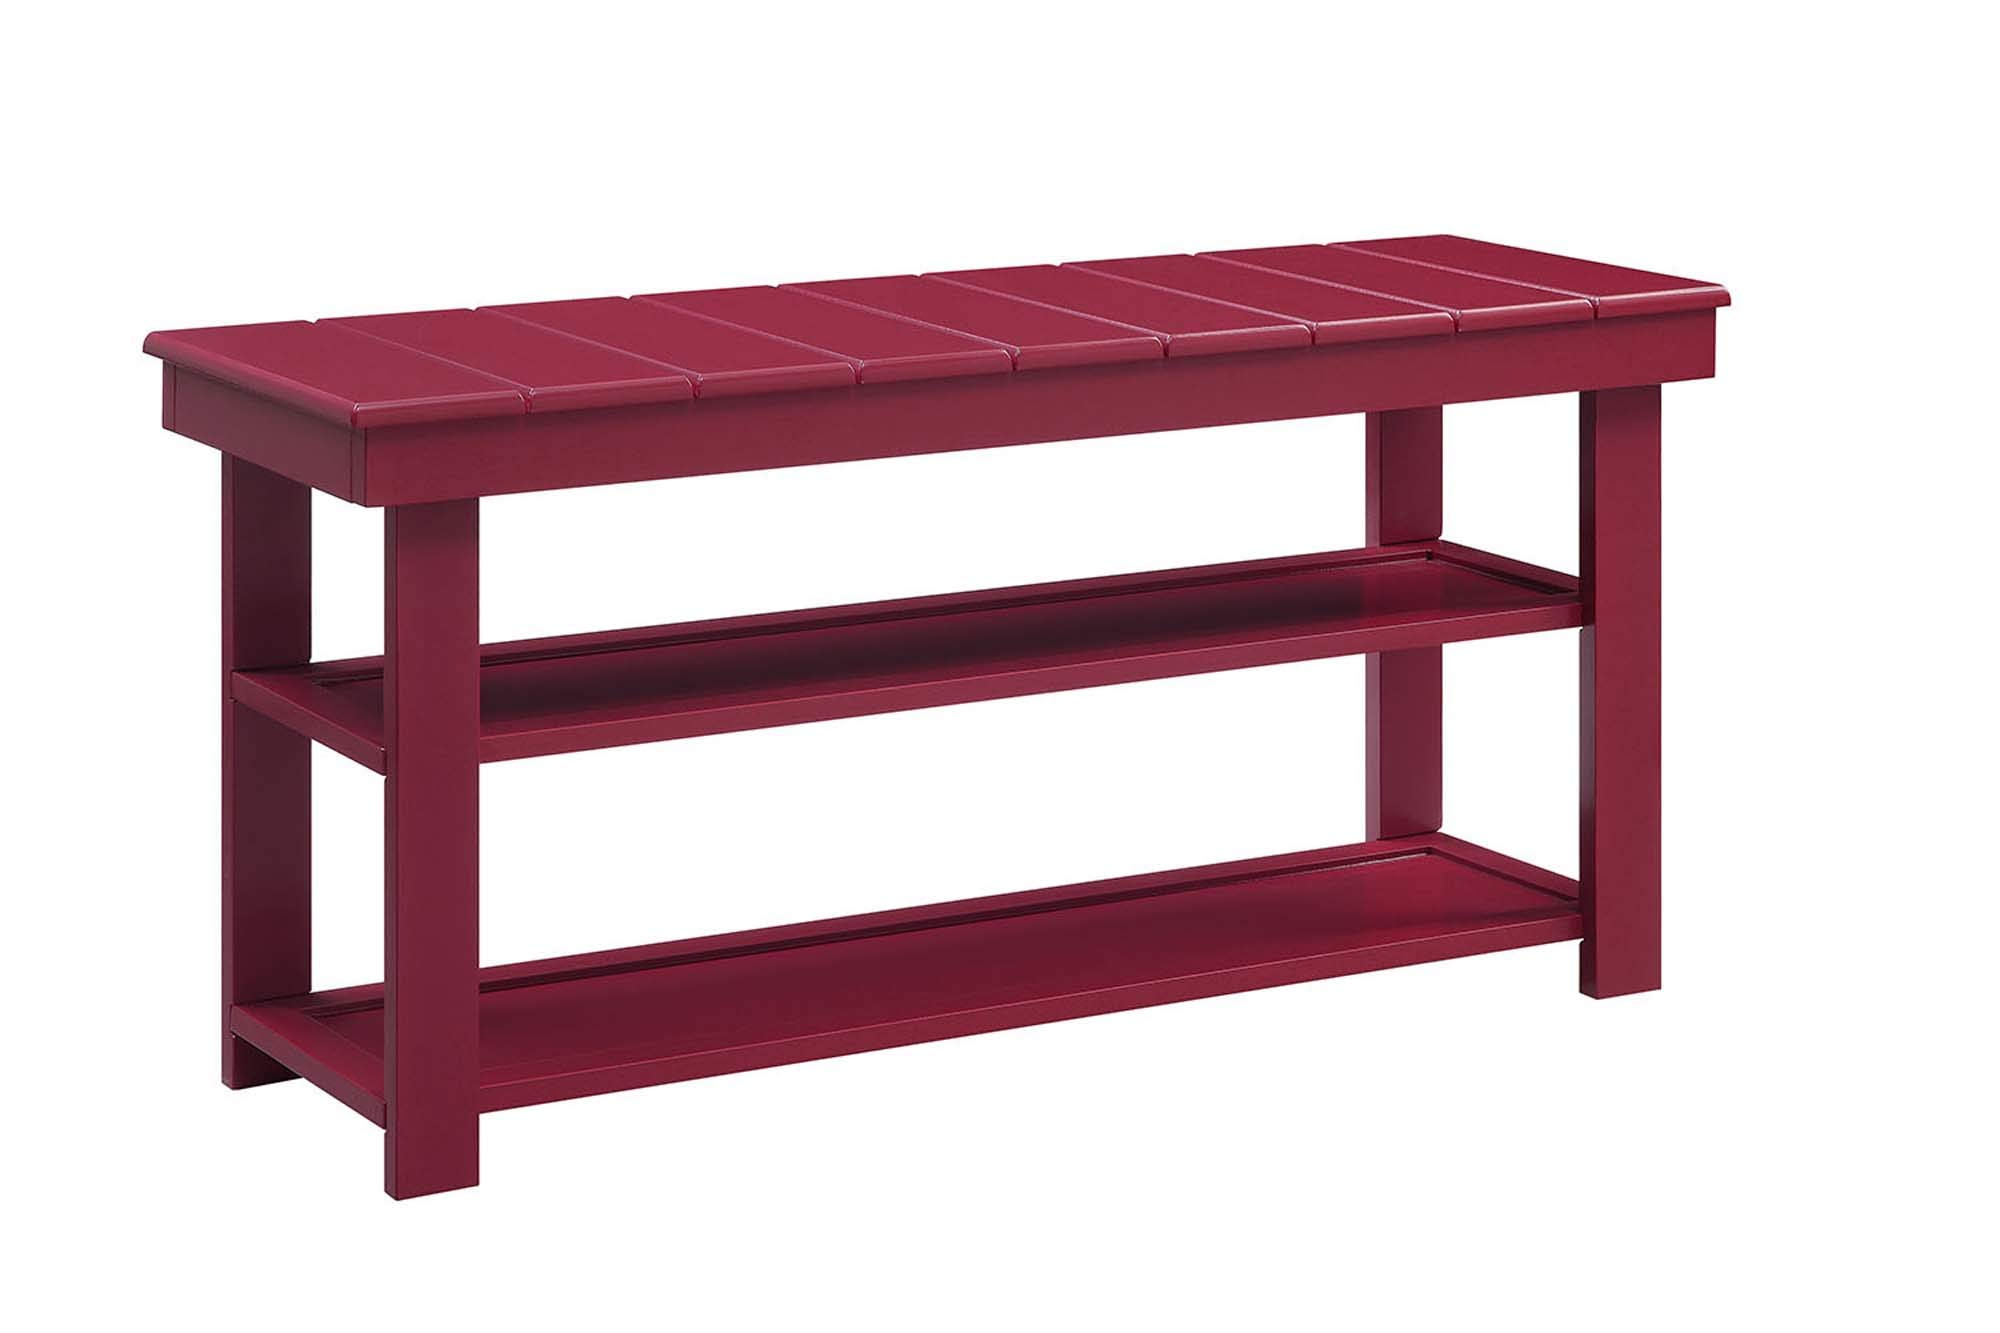 Convenience Concepts Oxford Utility Mudroom Bench, Cranberry Red by Convenience Concepts